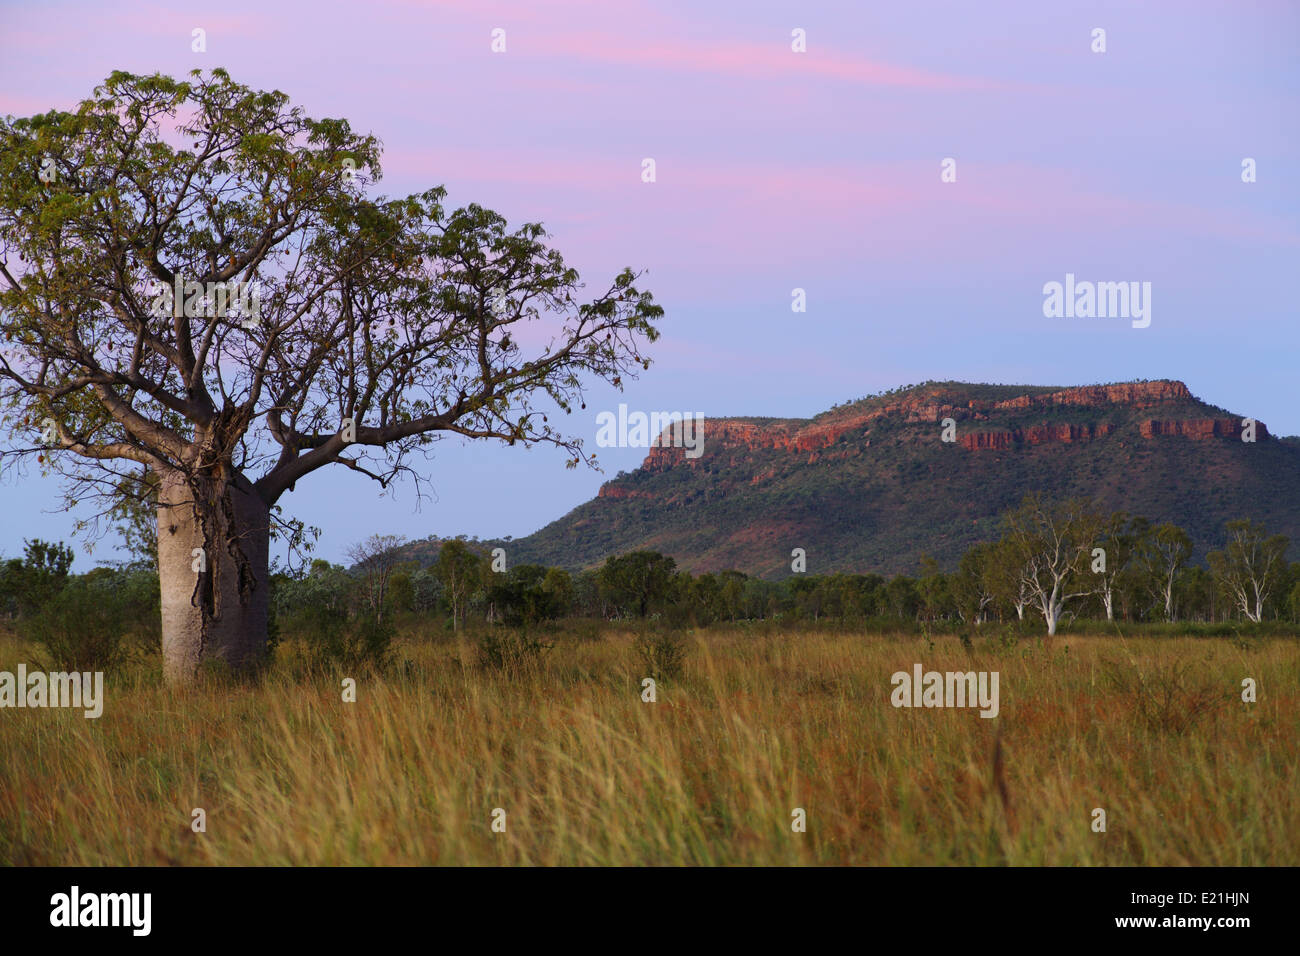 A regular Kimberley scene, seen at dusk - a boab tree and geologic outcrop, near the Ord River near Kununurra, Western - Stock Image